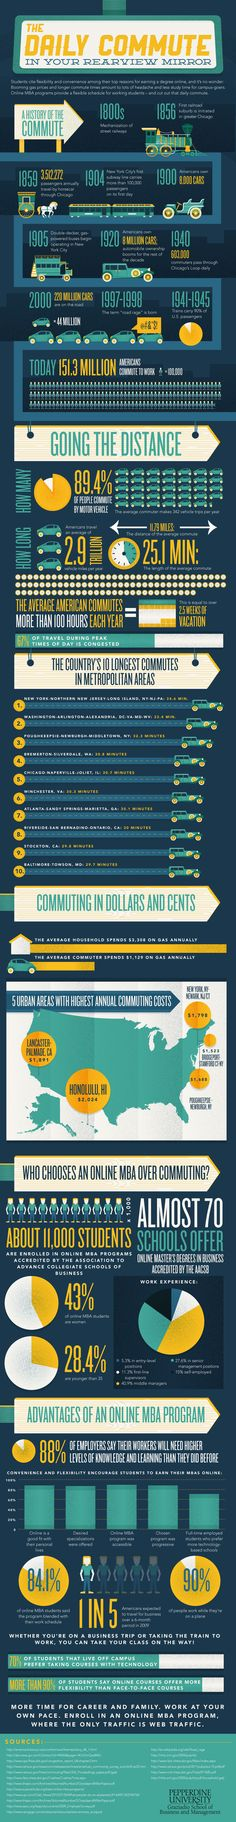 EVOLUTION OF THE DAILY COMMUTE [INFOGRAPHIC] #COMMUTE #EVOLUTION #INFOGRAPHIC